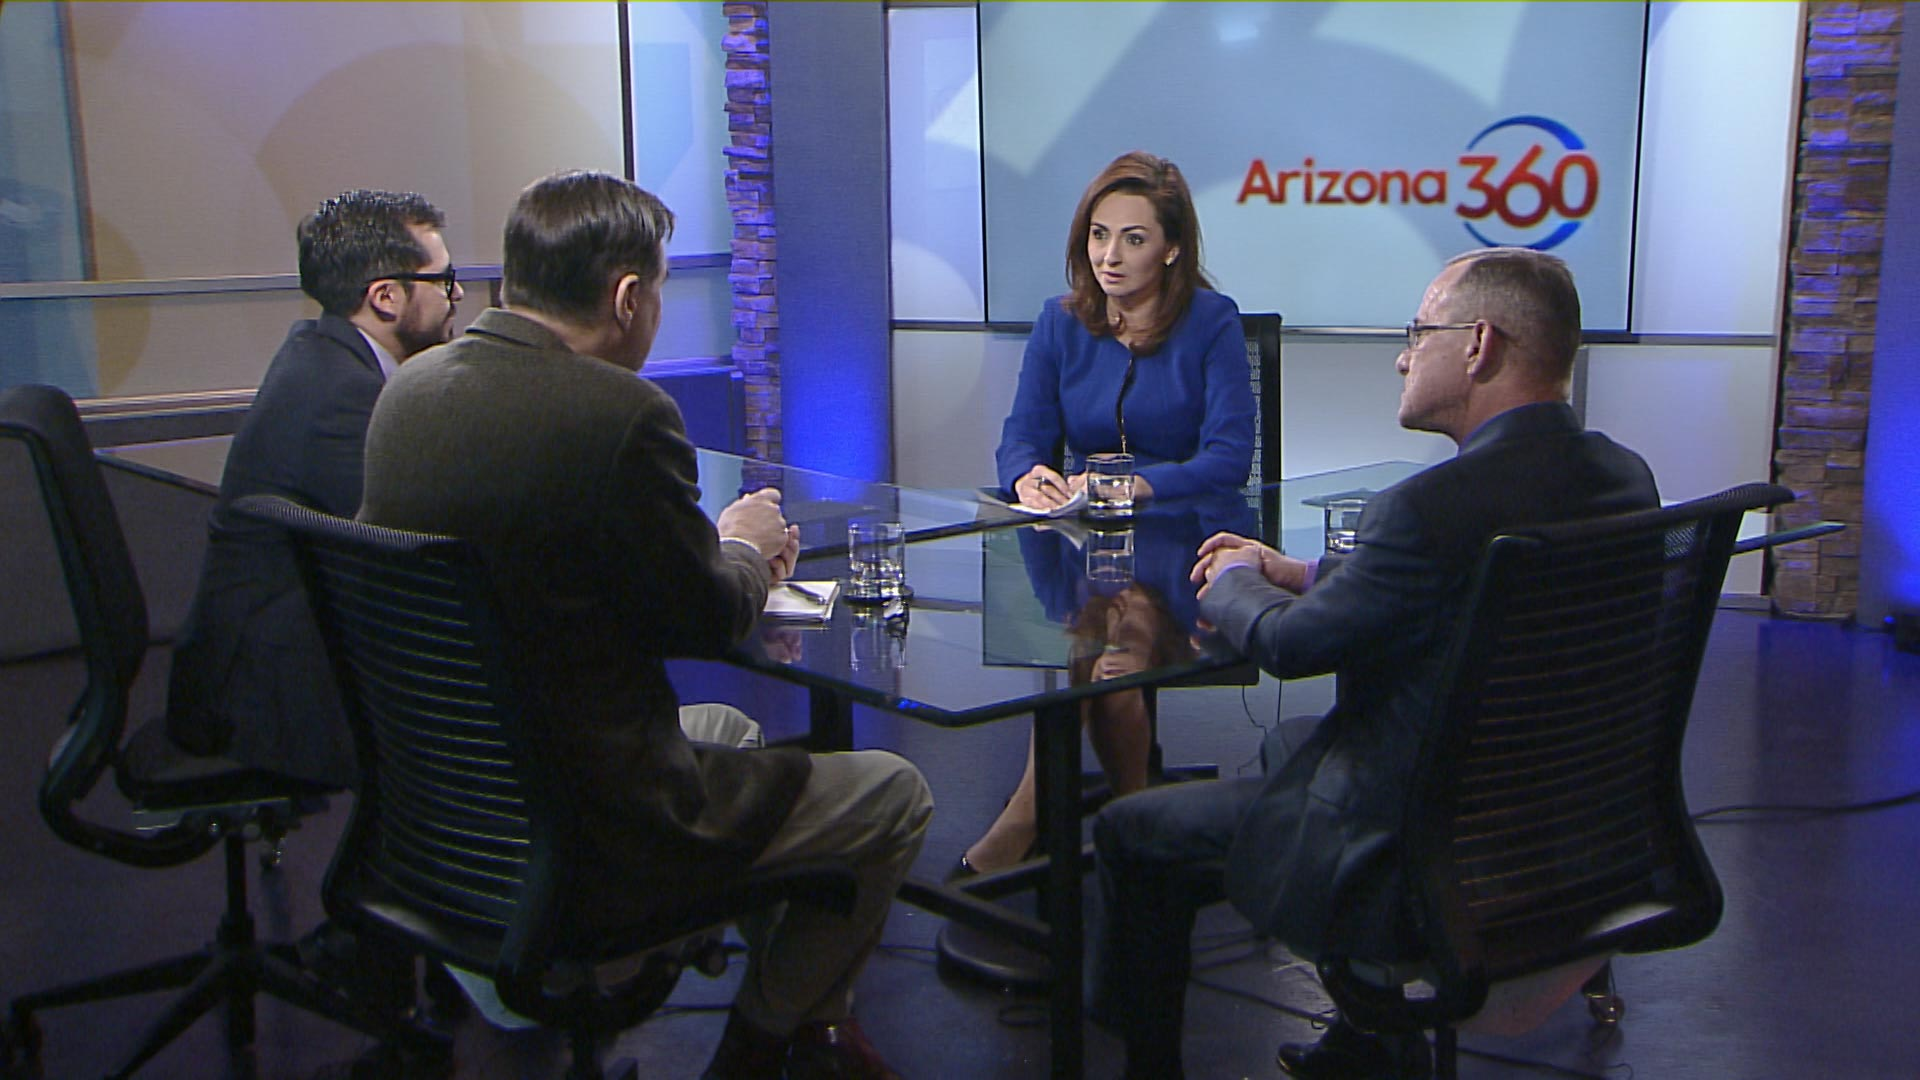 Lorraine Rivera joined by (from left to right) Arizona Daily Star editorial writer Luis Carrasco, Tucson Sentinel publisher Dylan Smith and 1030 KVOI contributor Jim Kelley at Arizona Public Media.